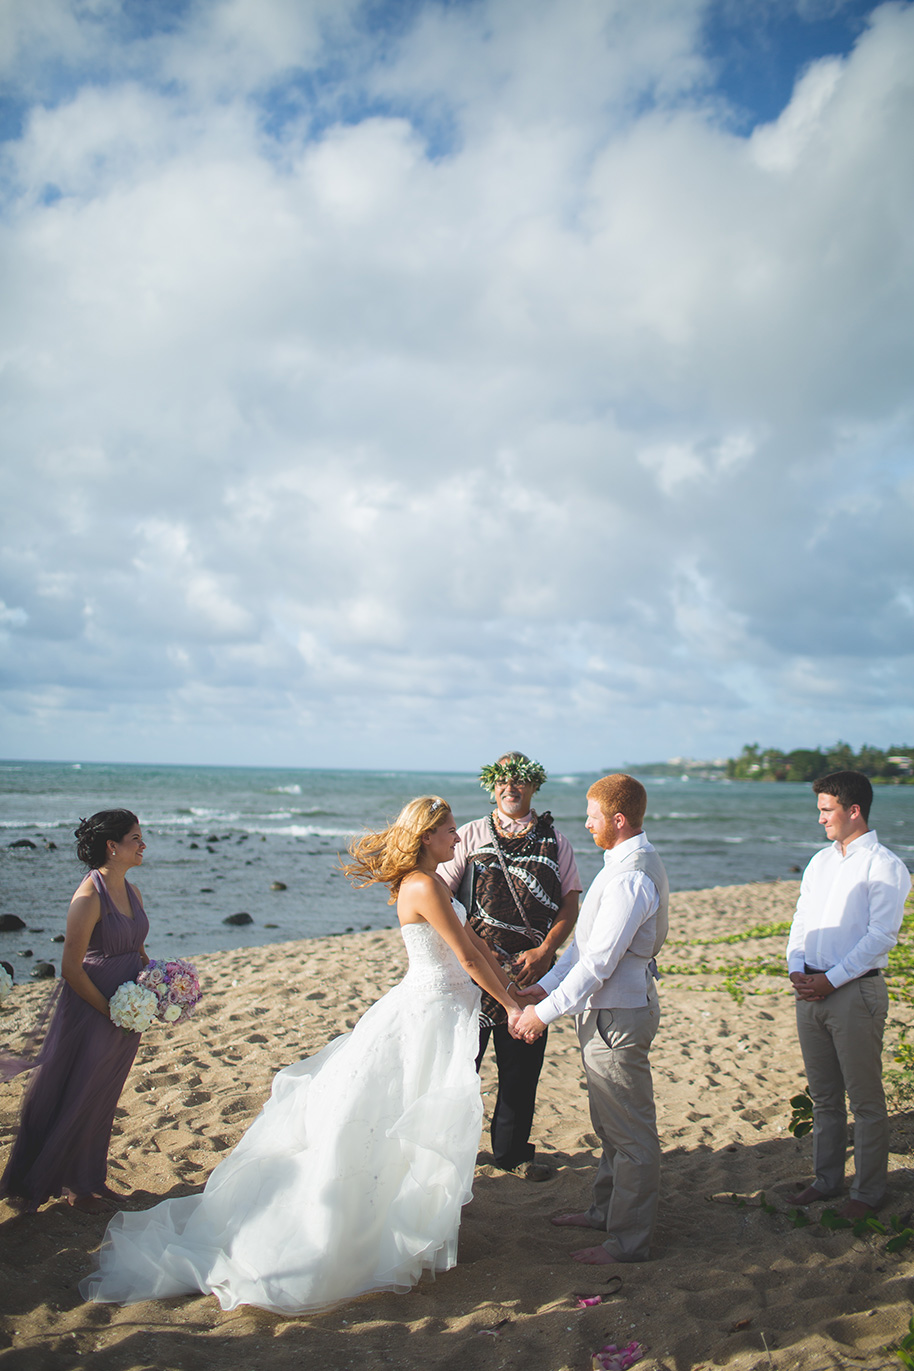 Maui-Beach-Wedding-042816-11